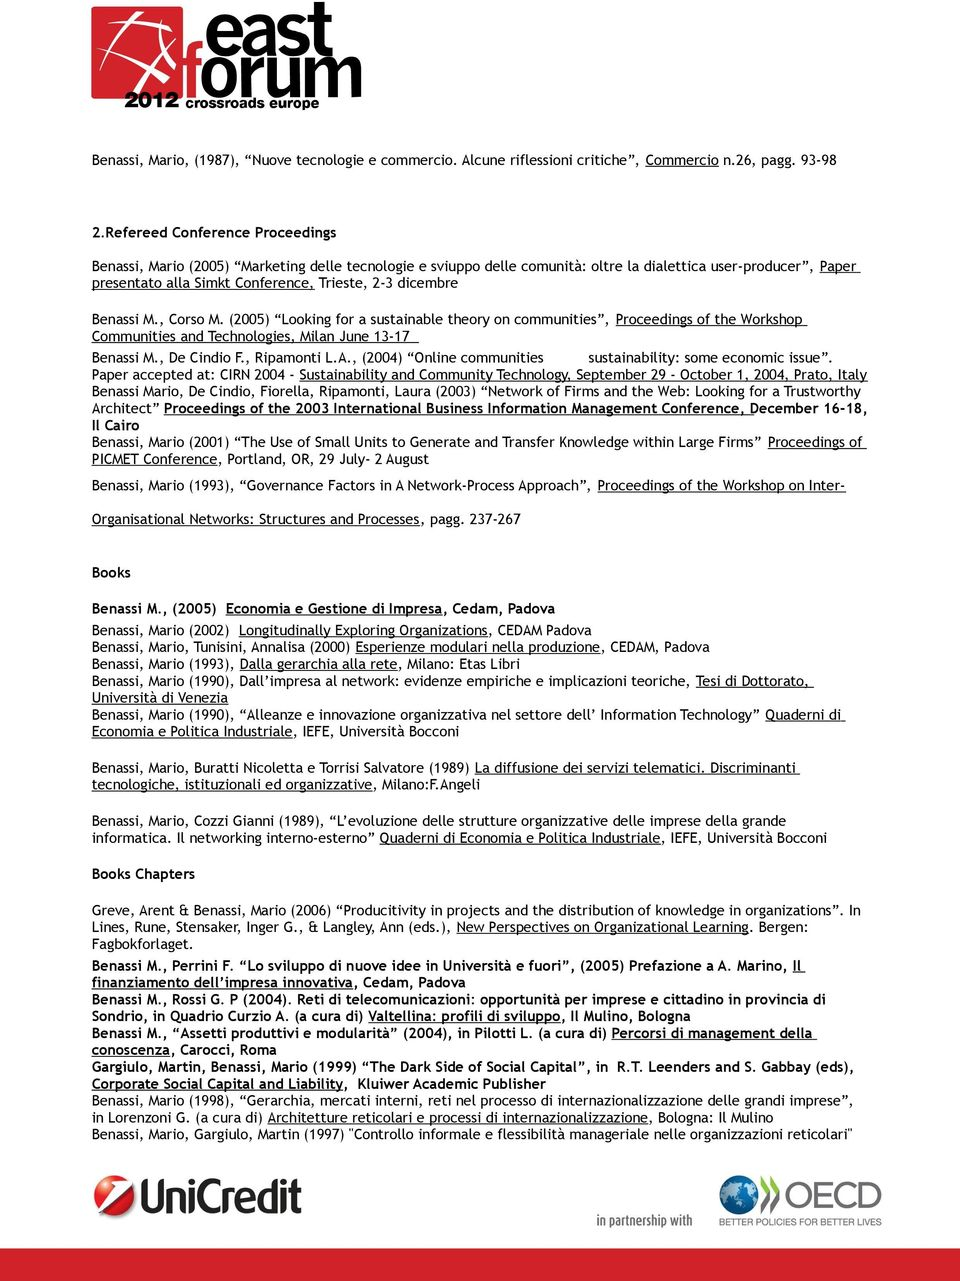 dicembre Benassi M., Corso M. (2005) Looking for a sustainable theory on communities, Proceedings of the Workshop Communities and Technologies, Milan June 13-17 Benassi M., De Cindio F., Ripamonti L.